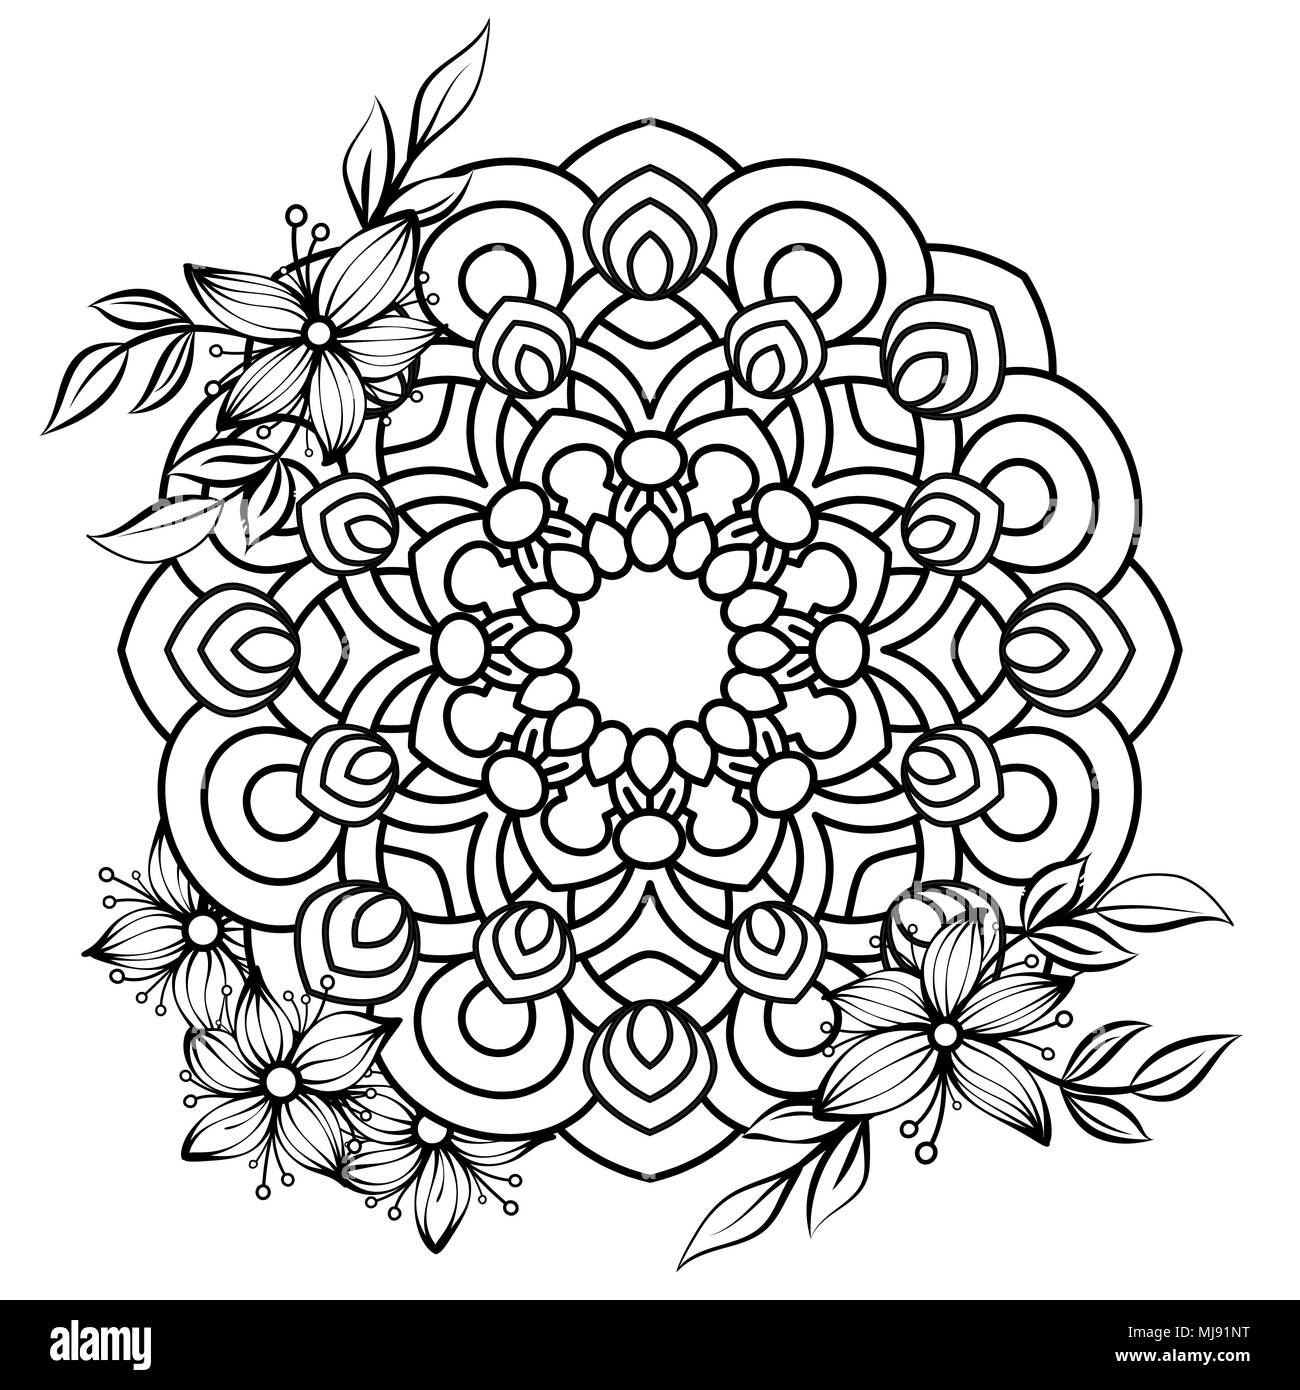 Floral Mandala Pattern In Black And White Adult Coloring Book Page With Flowers Mandalas Oriental Vintage Decorative Elements